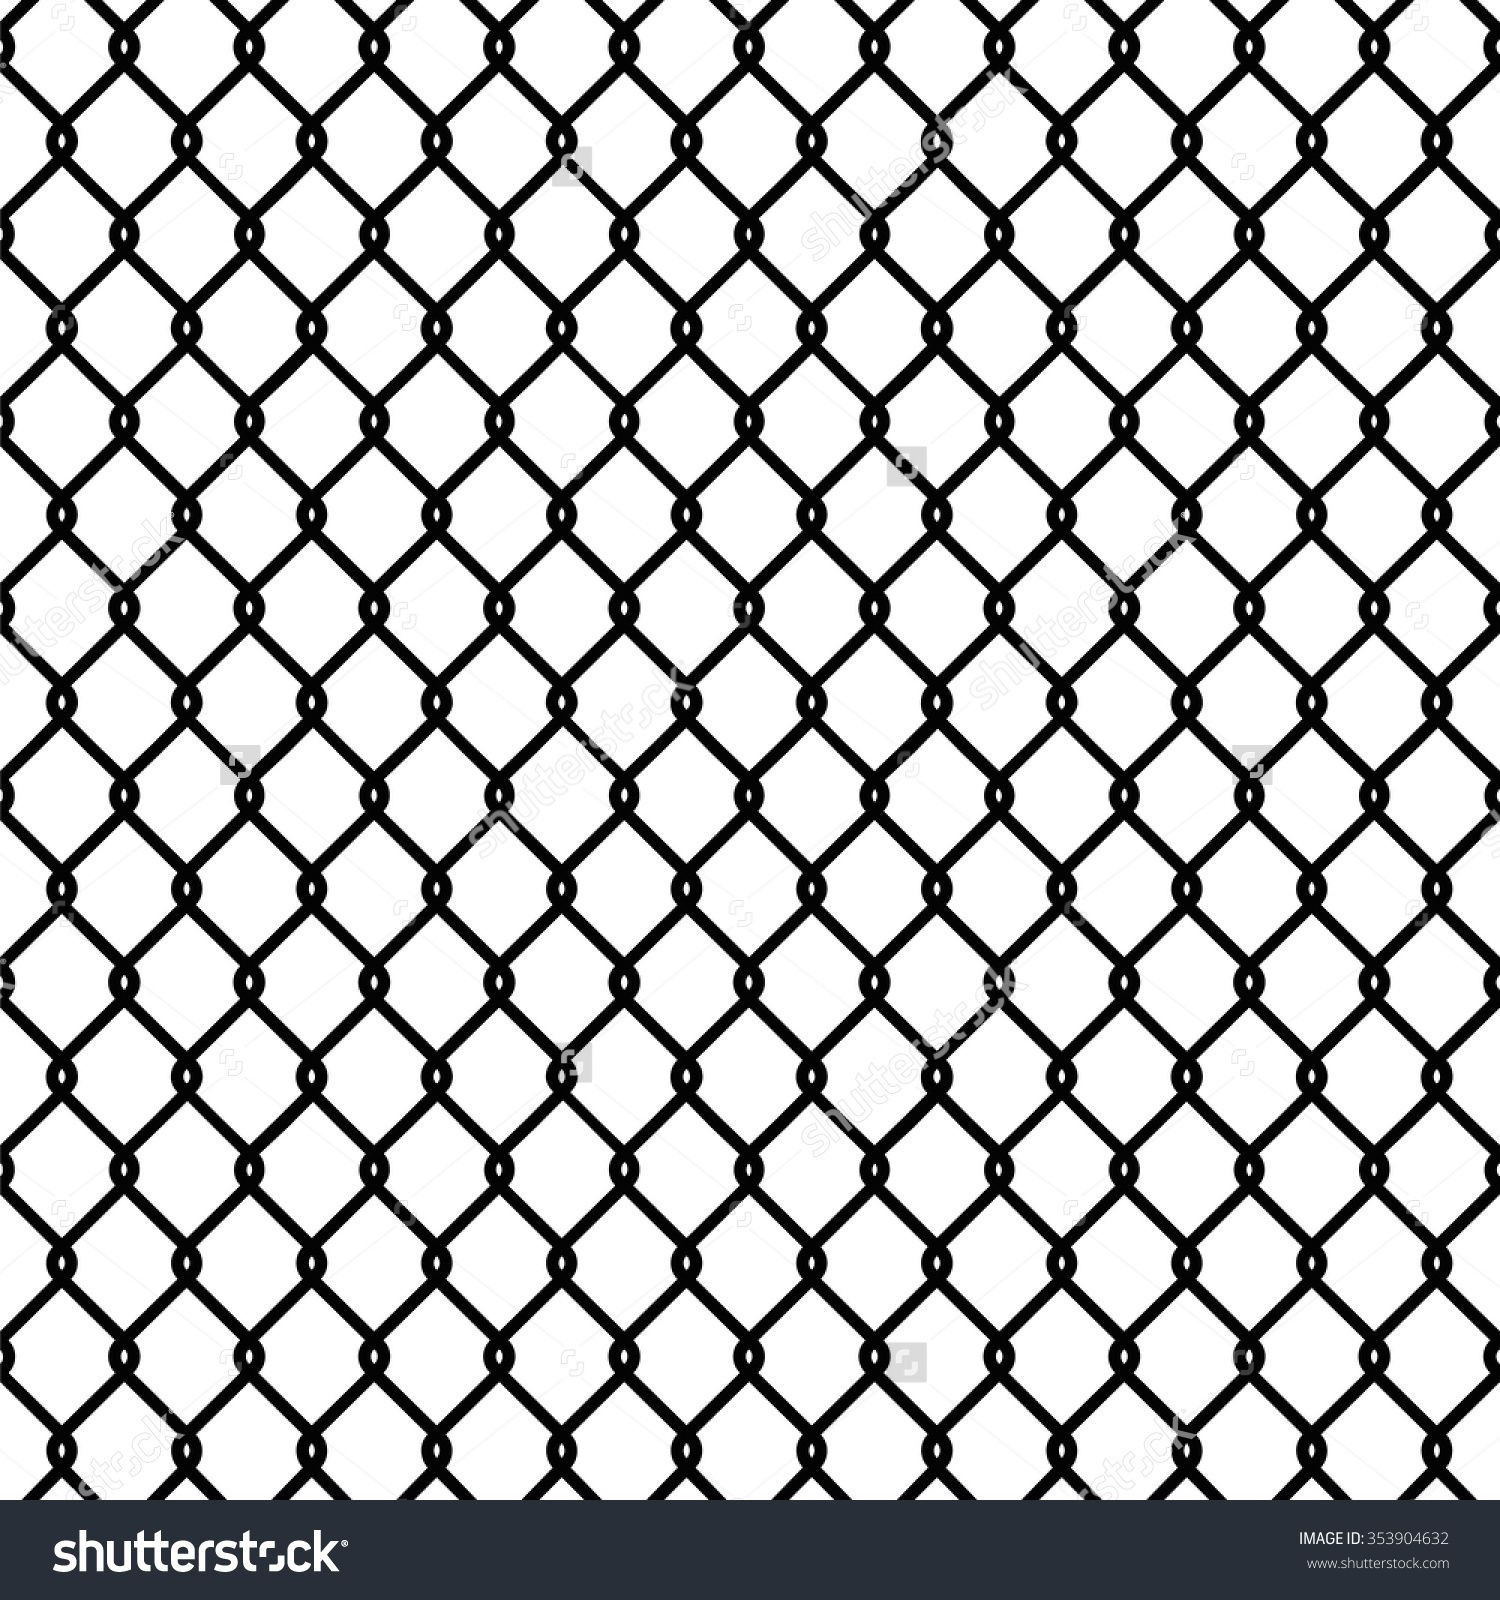 Broken Chain Link Fence Vector stock-vector-seamless-chain-link-fence-pattern-texture-wallpaper